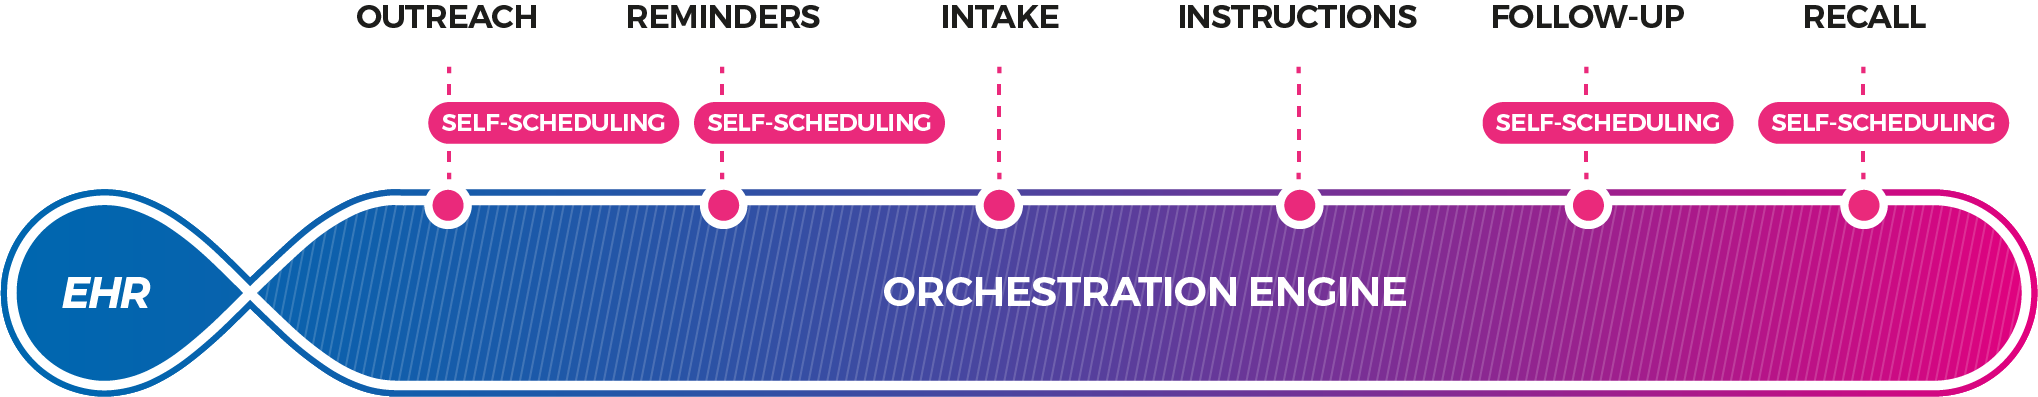 Orchestrated-patient-self-scheduling-diagram